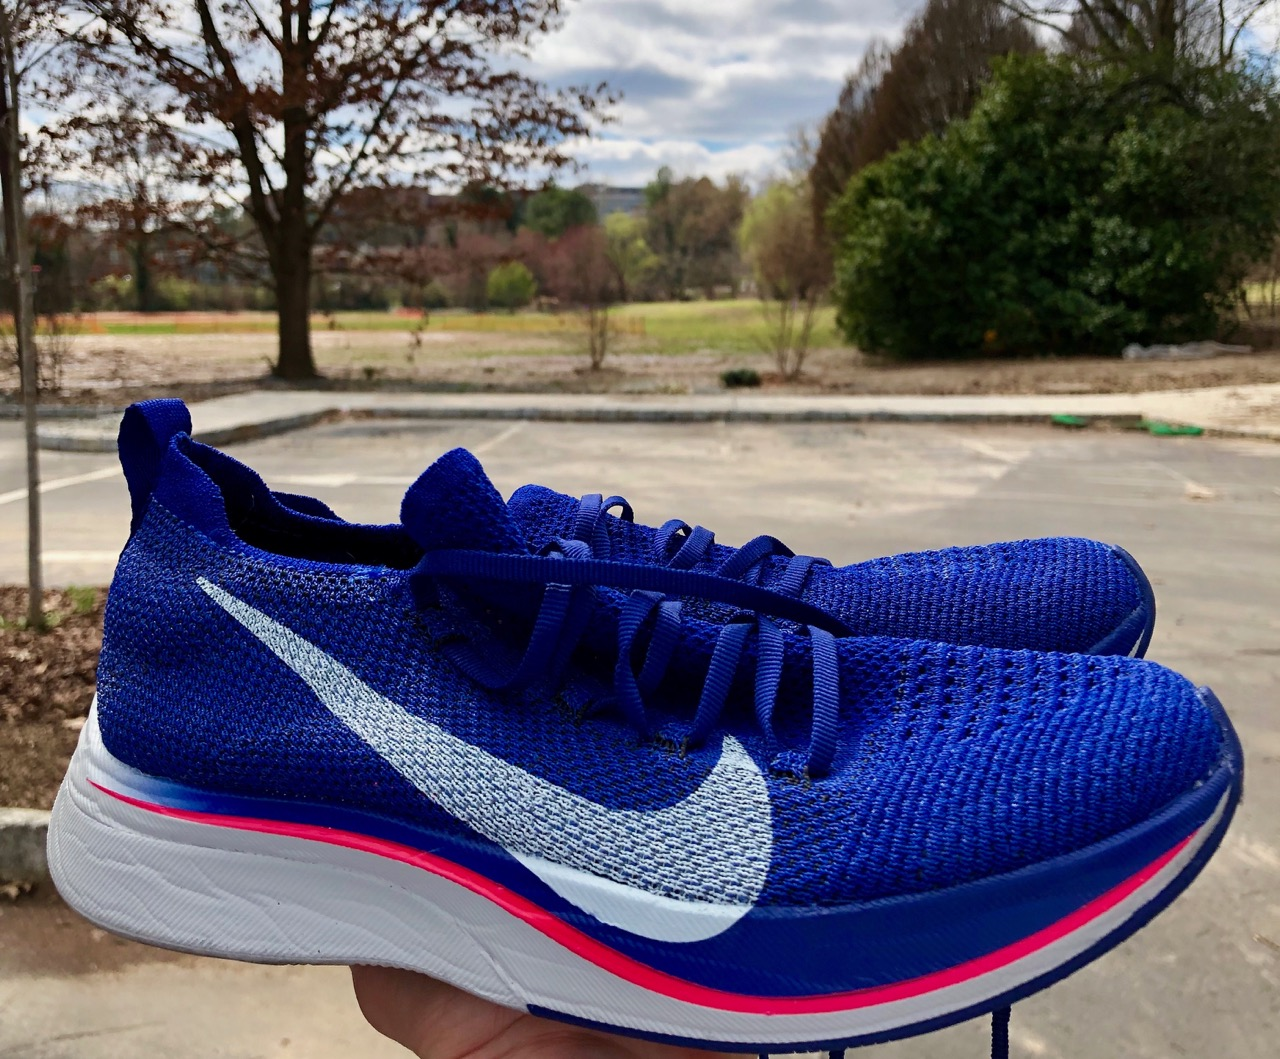 Nike Zoom Vaporfly 4% -- worth the hype